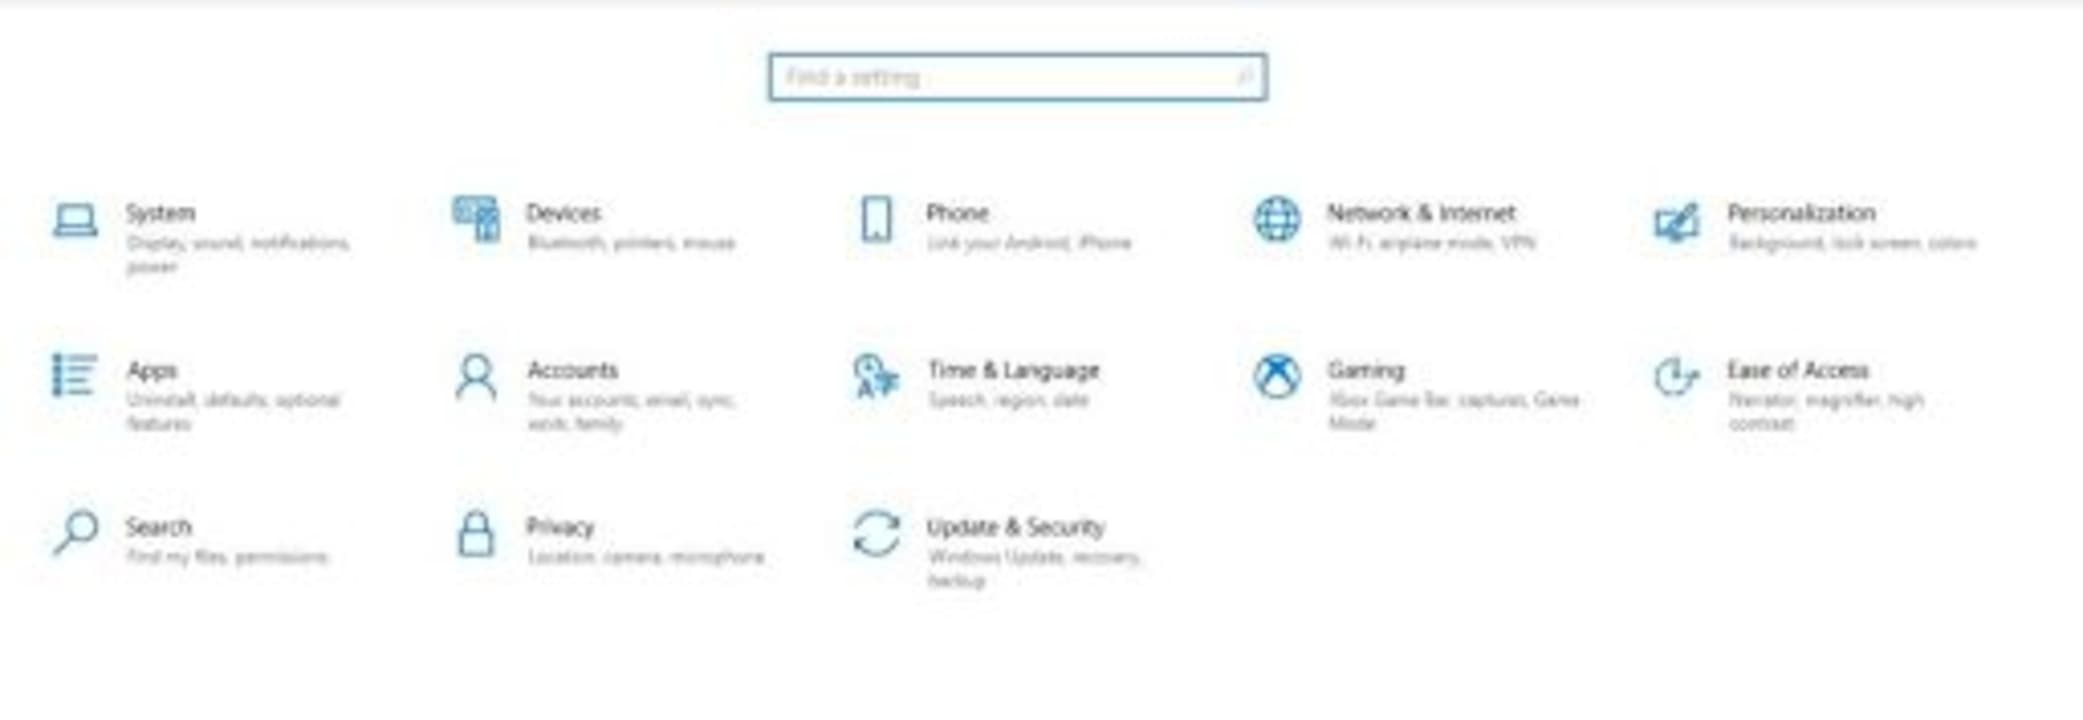 How To Upgrade Windows 10 To 11 & Window 11 New Features